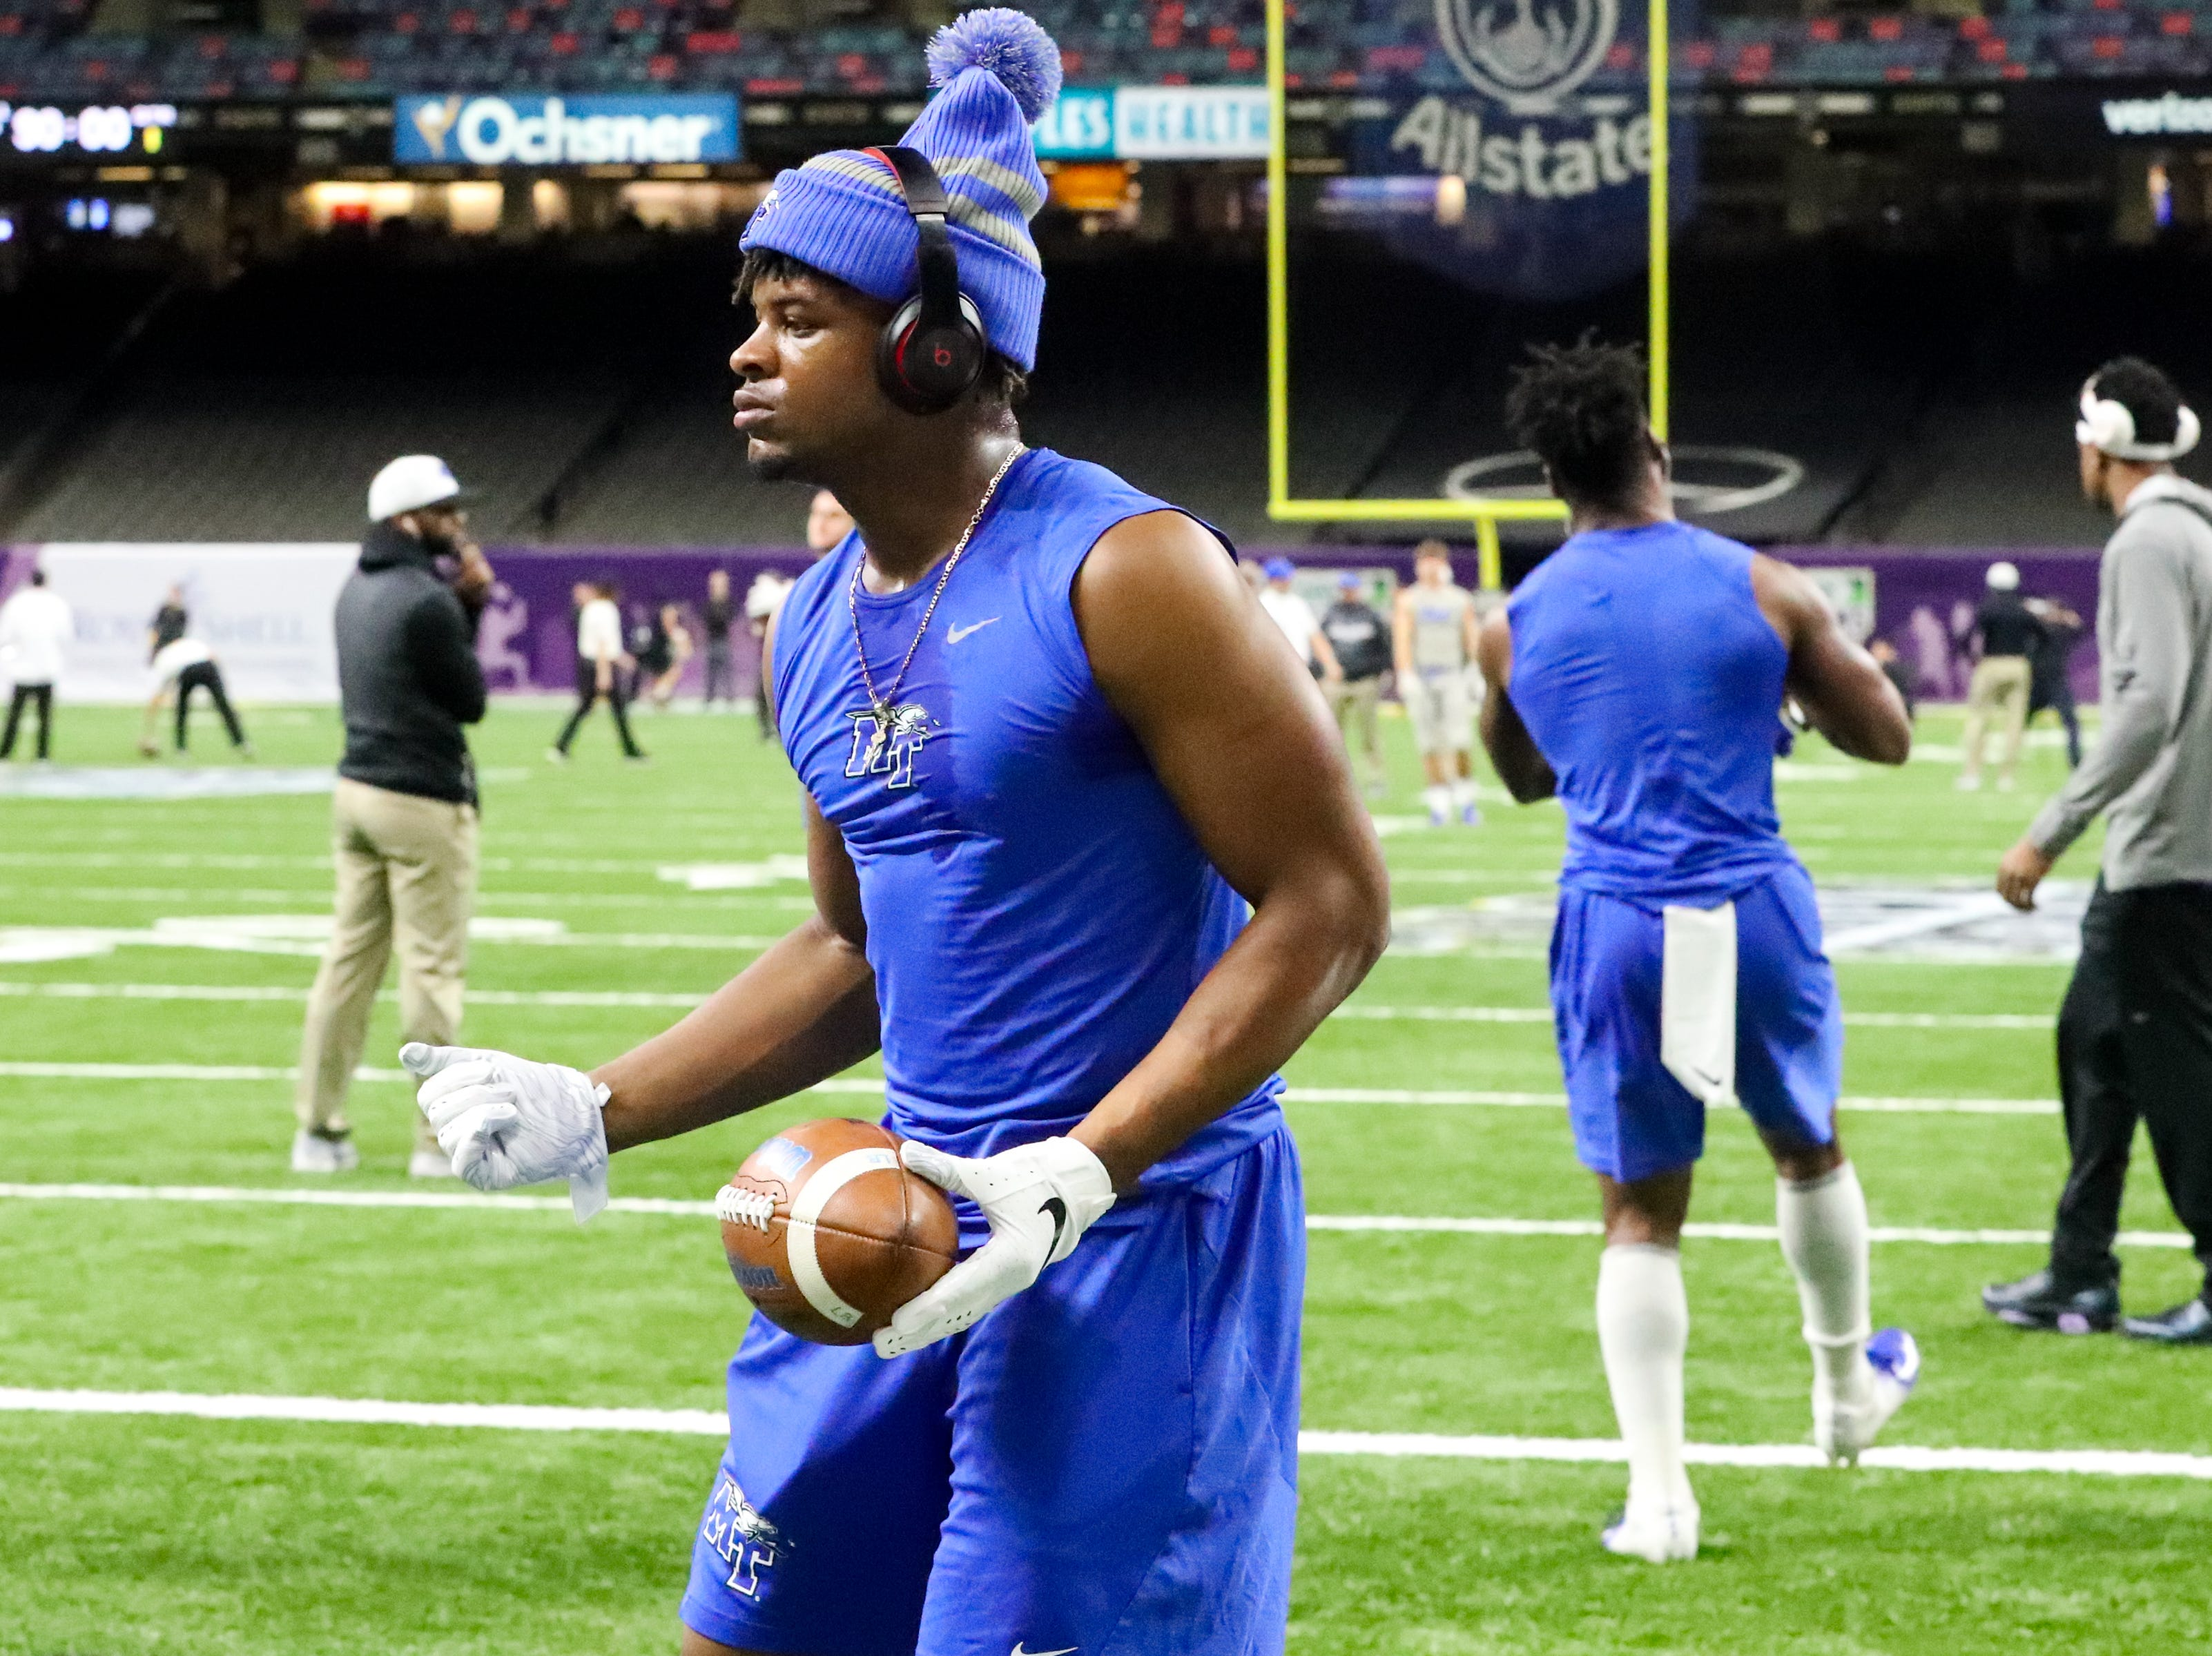 Middle Tennessee Blue Raiders linebacker Wayne Parks (26) warms up before the game at the Mercedes-Benz Superdome Saturday, Dec. 15, 2018, in New Orleans, La.